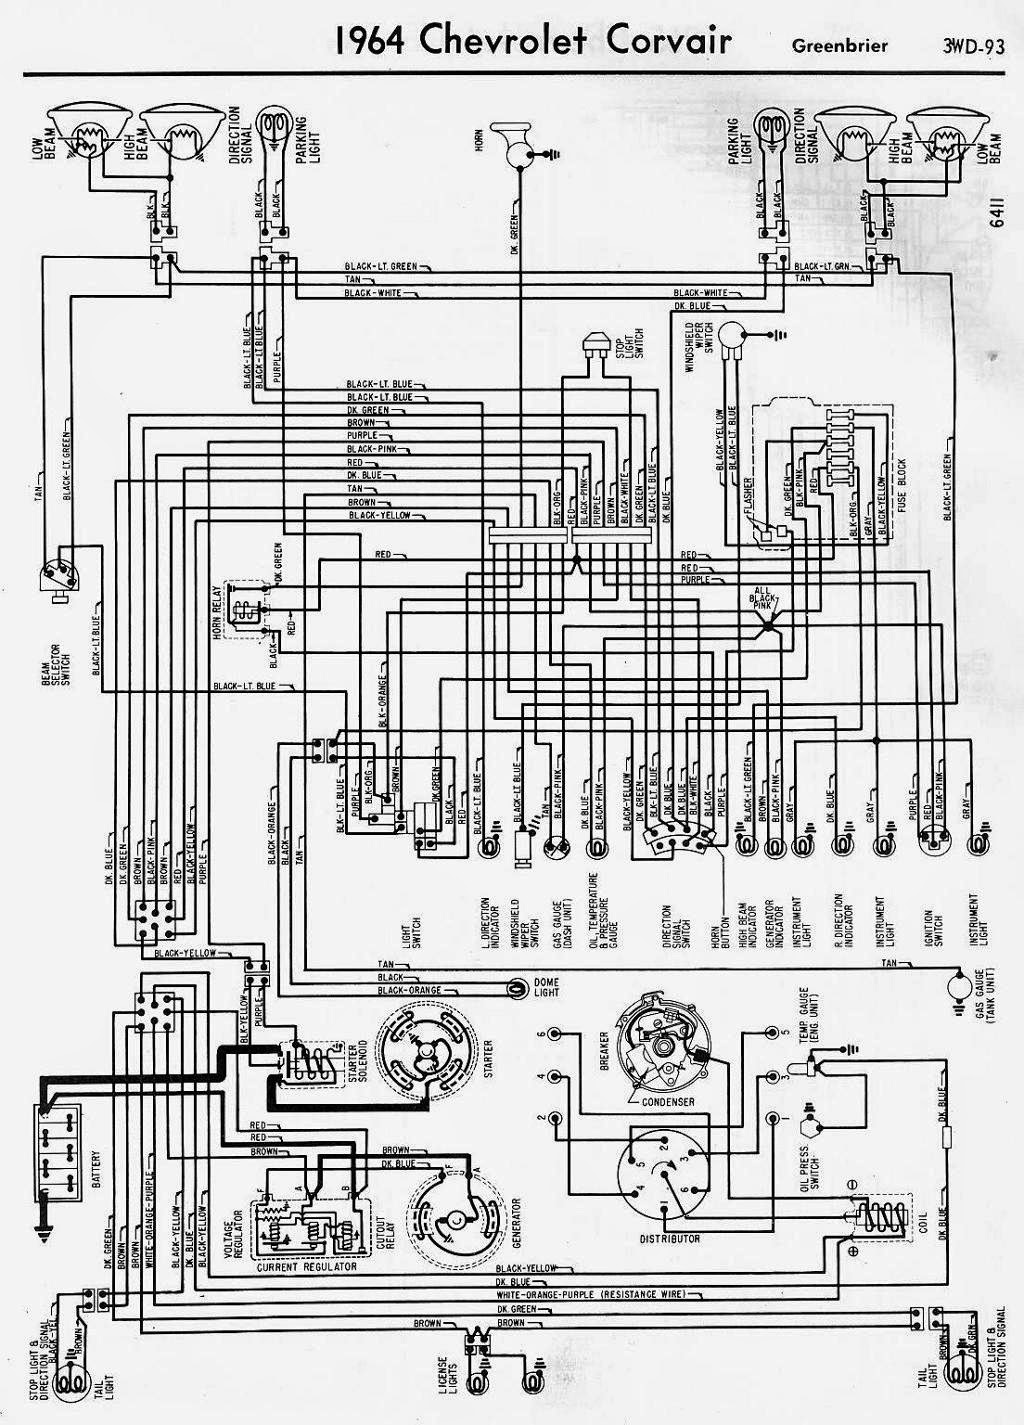 1964 chevrolet corvair greenbrier wiring diagram schematic wiring [ 1024 x 1425 Pixel ]